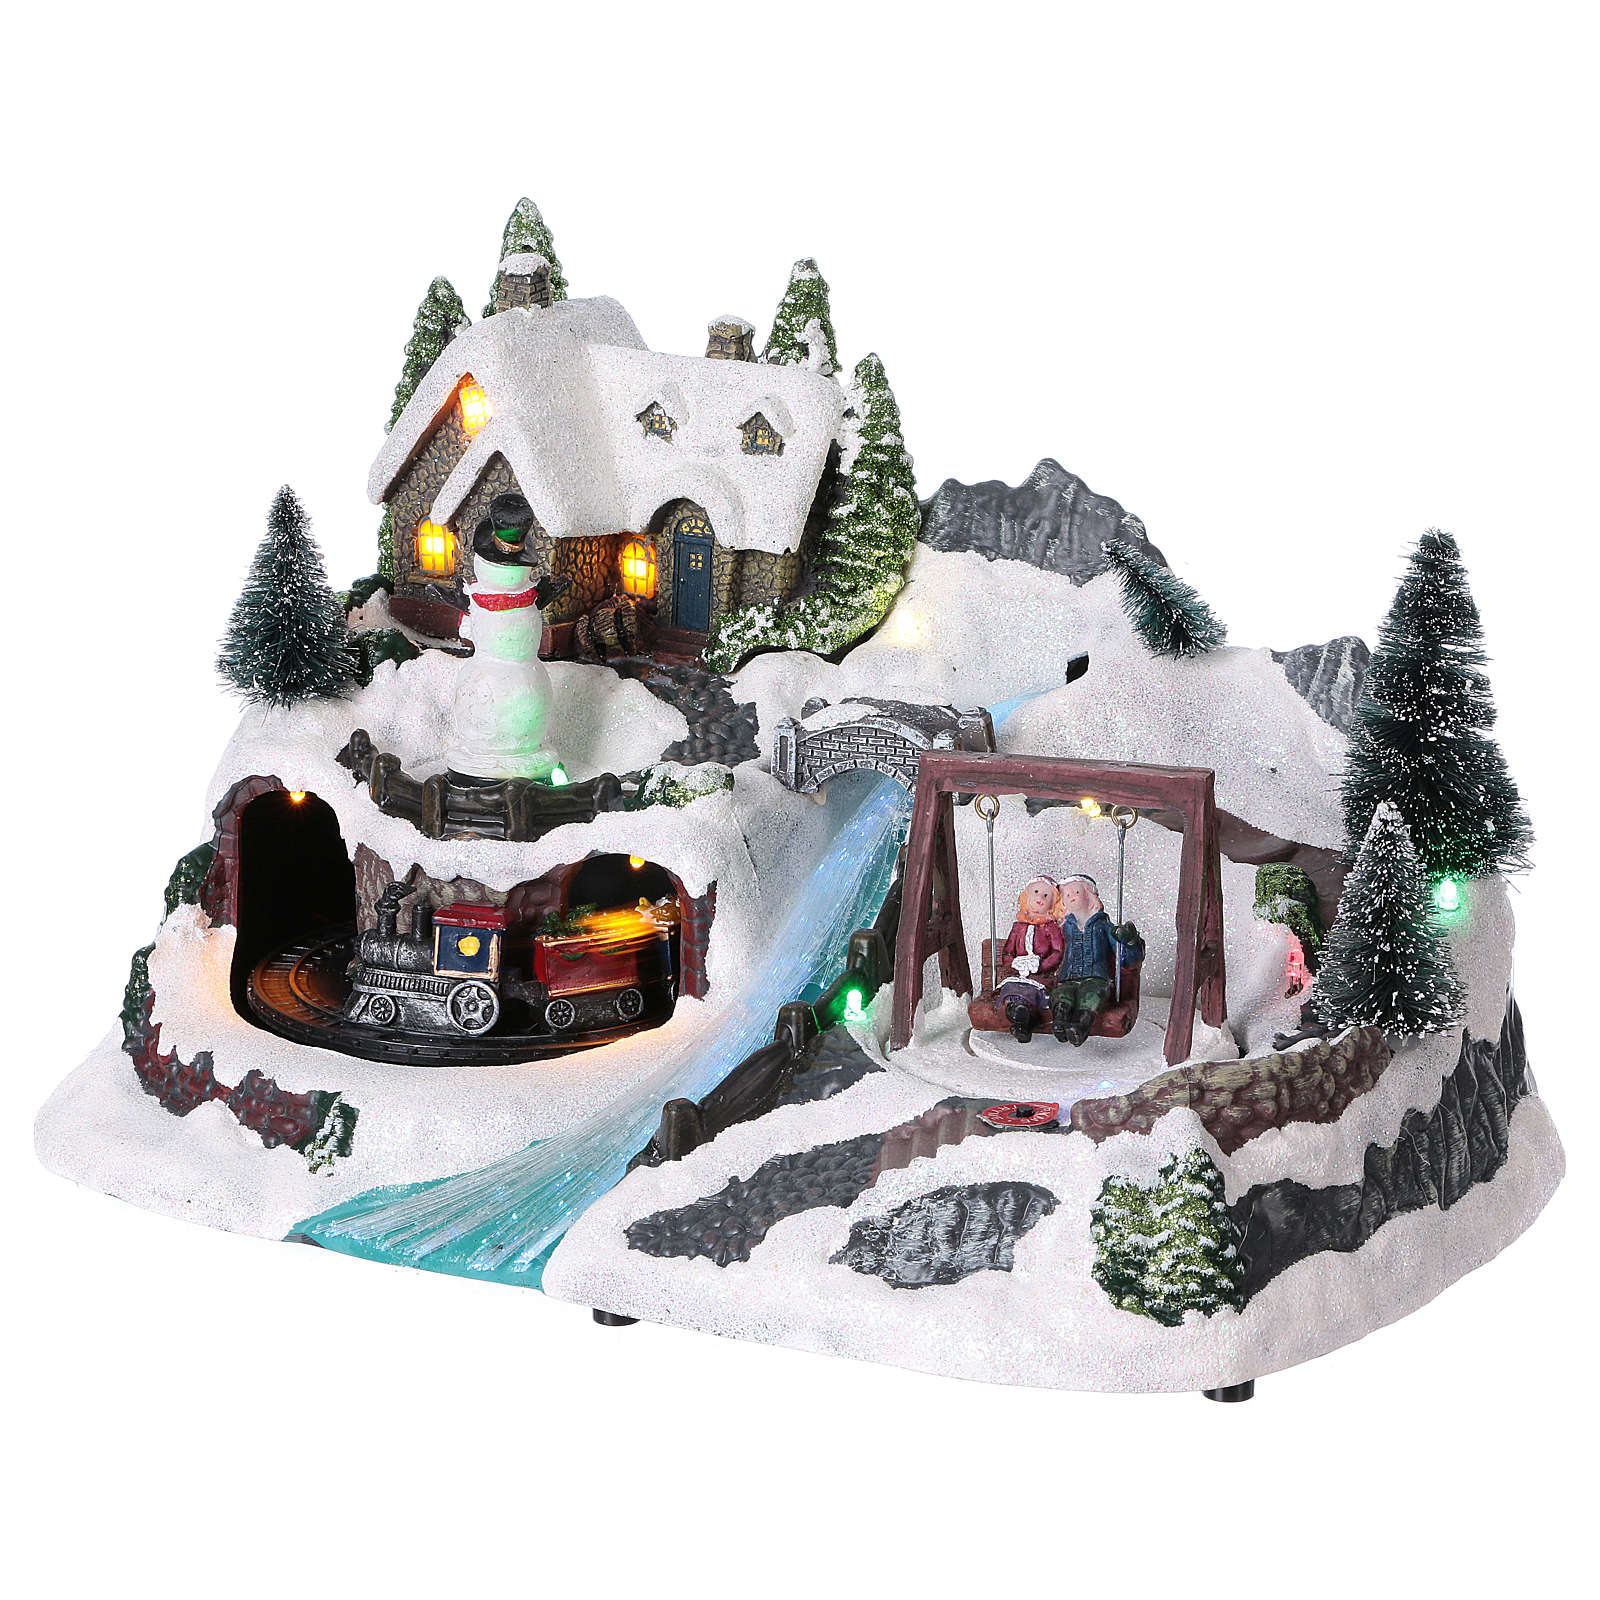 Snowy Christmas Village with Animated Train and Swing20x30x20 cm Battery operated 3